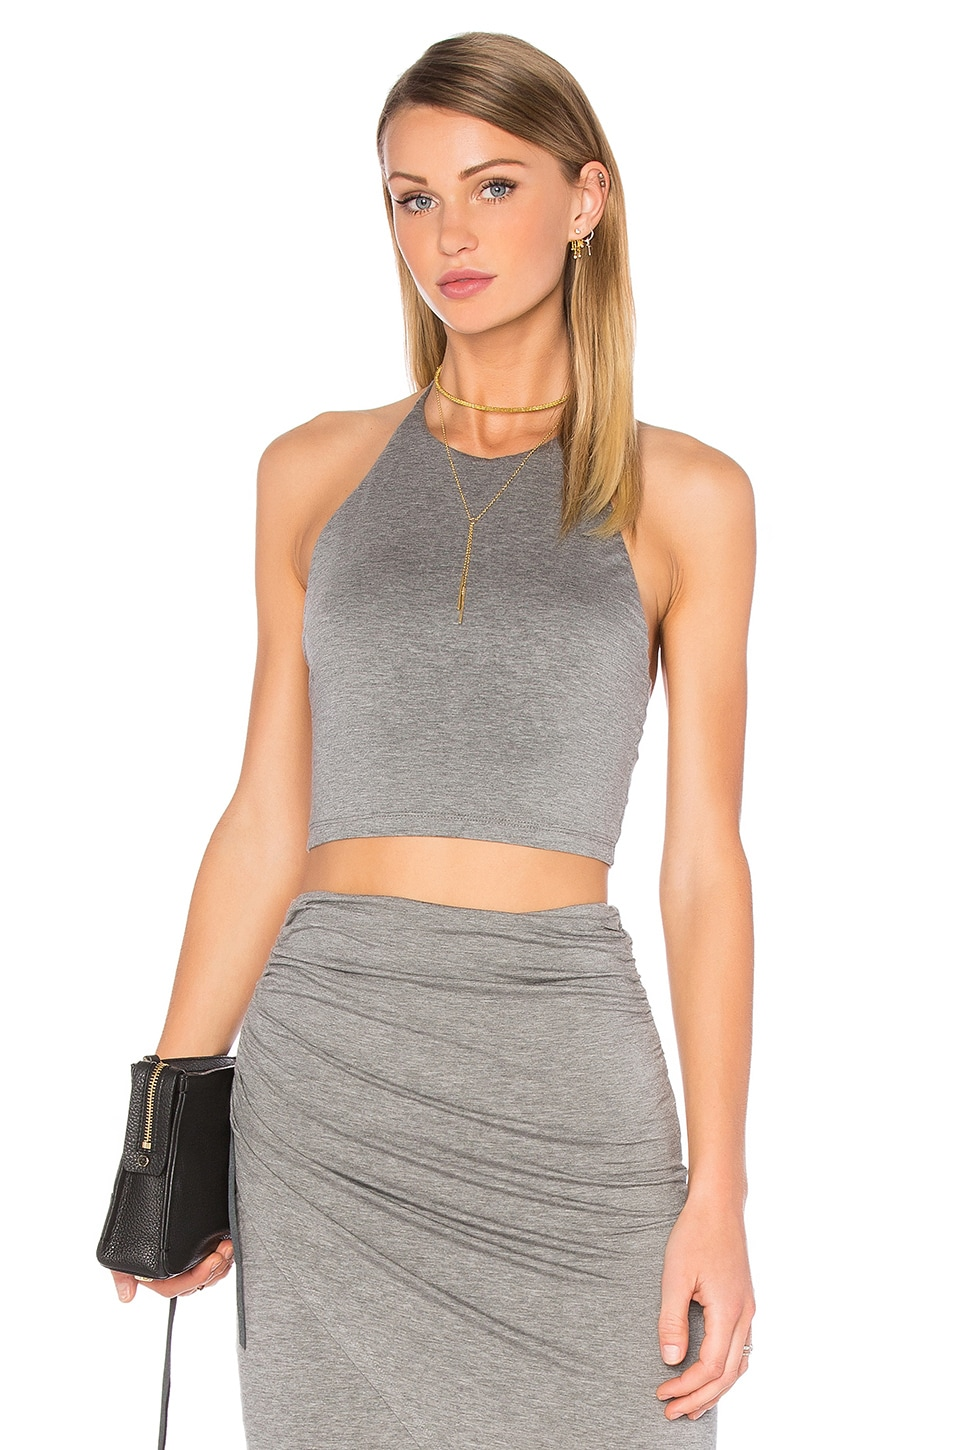 Alice + Olivia Jaymee Halter Crop Top in Medium Grey